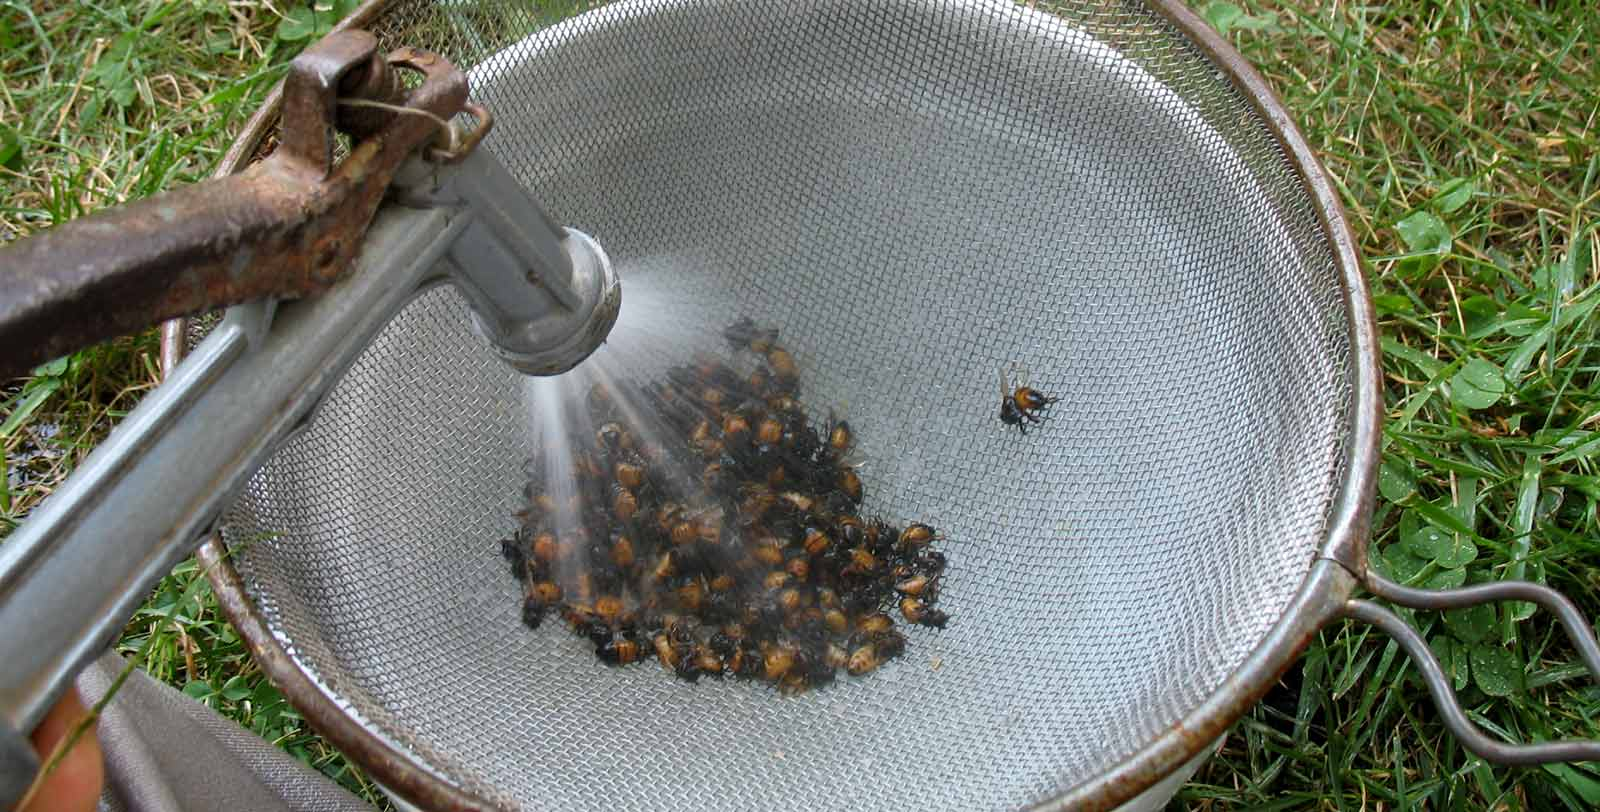 Spraying off mites as part of the Alcohol Wash assay for bees